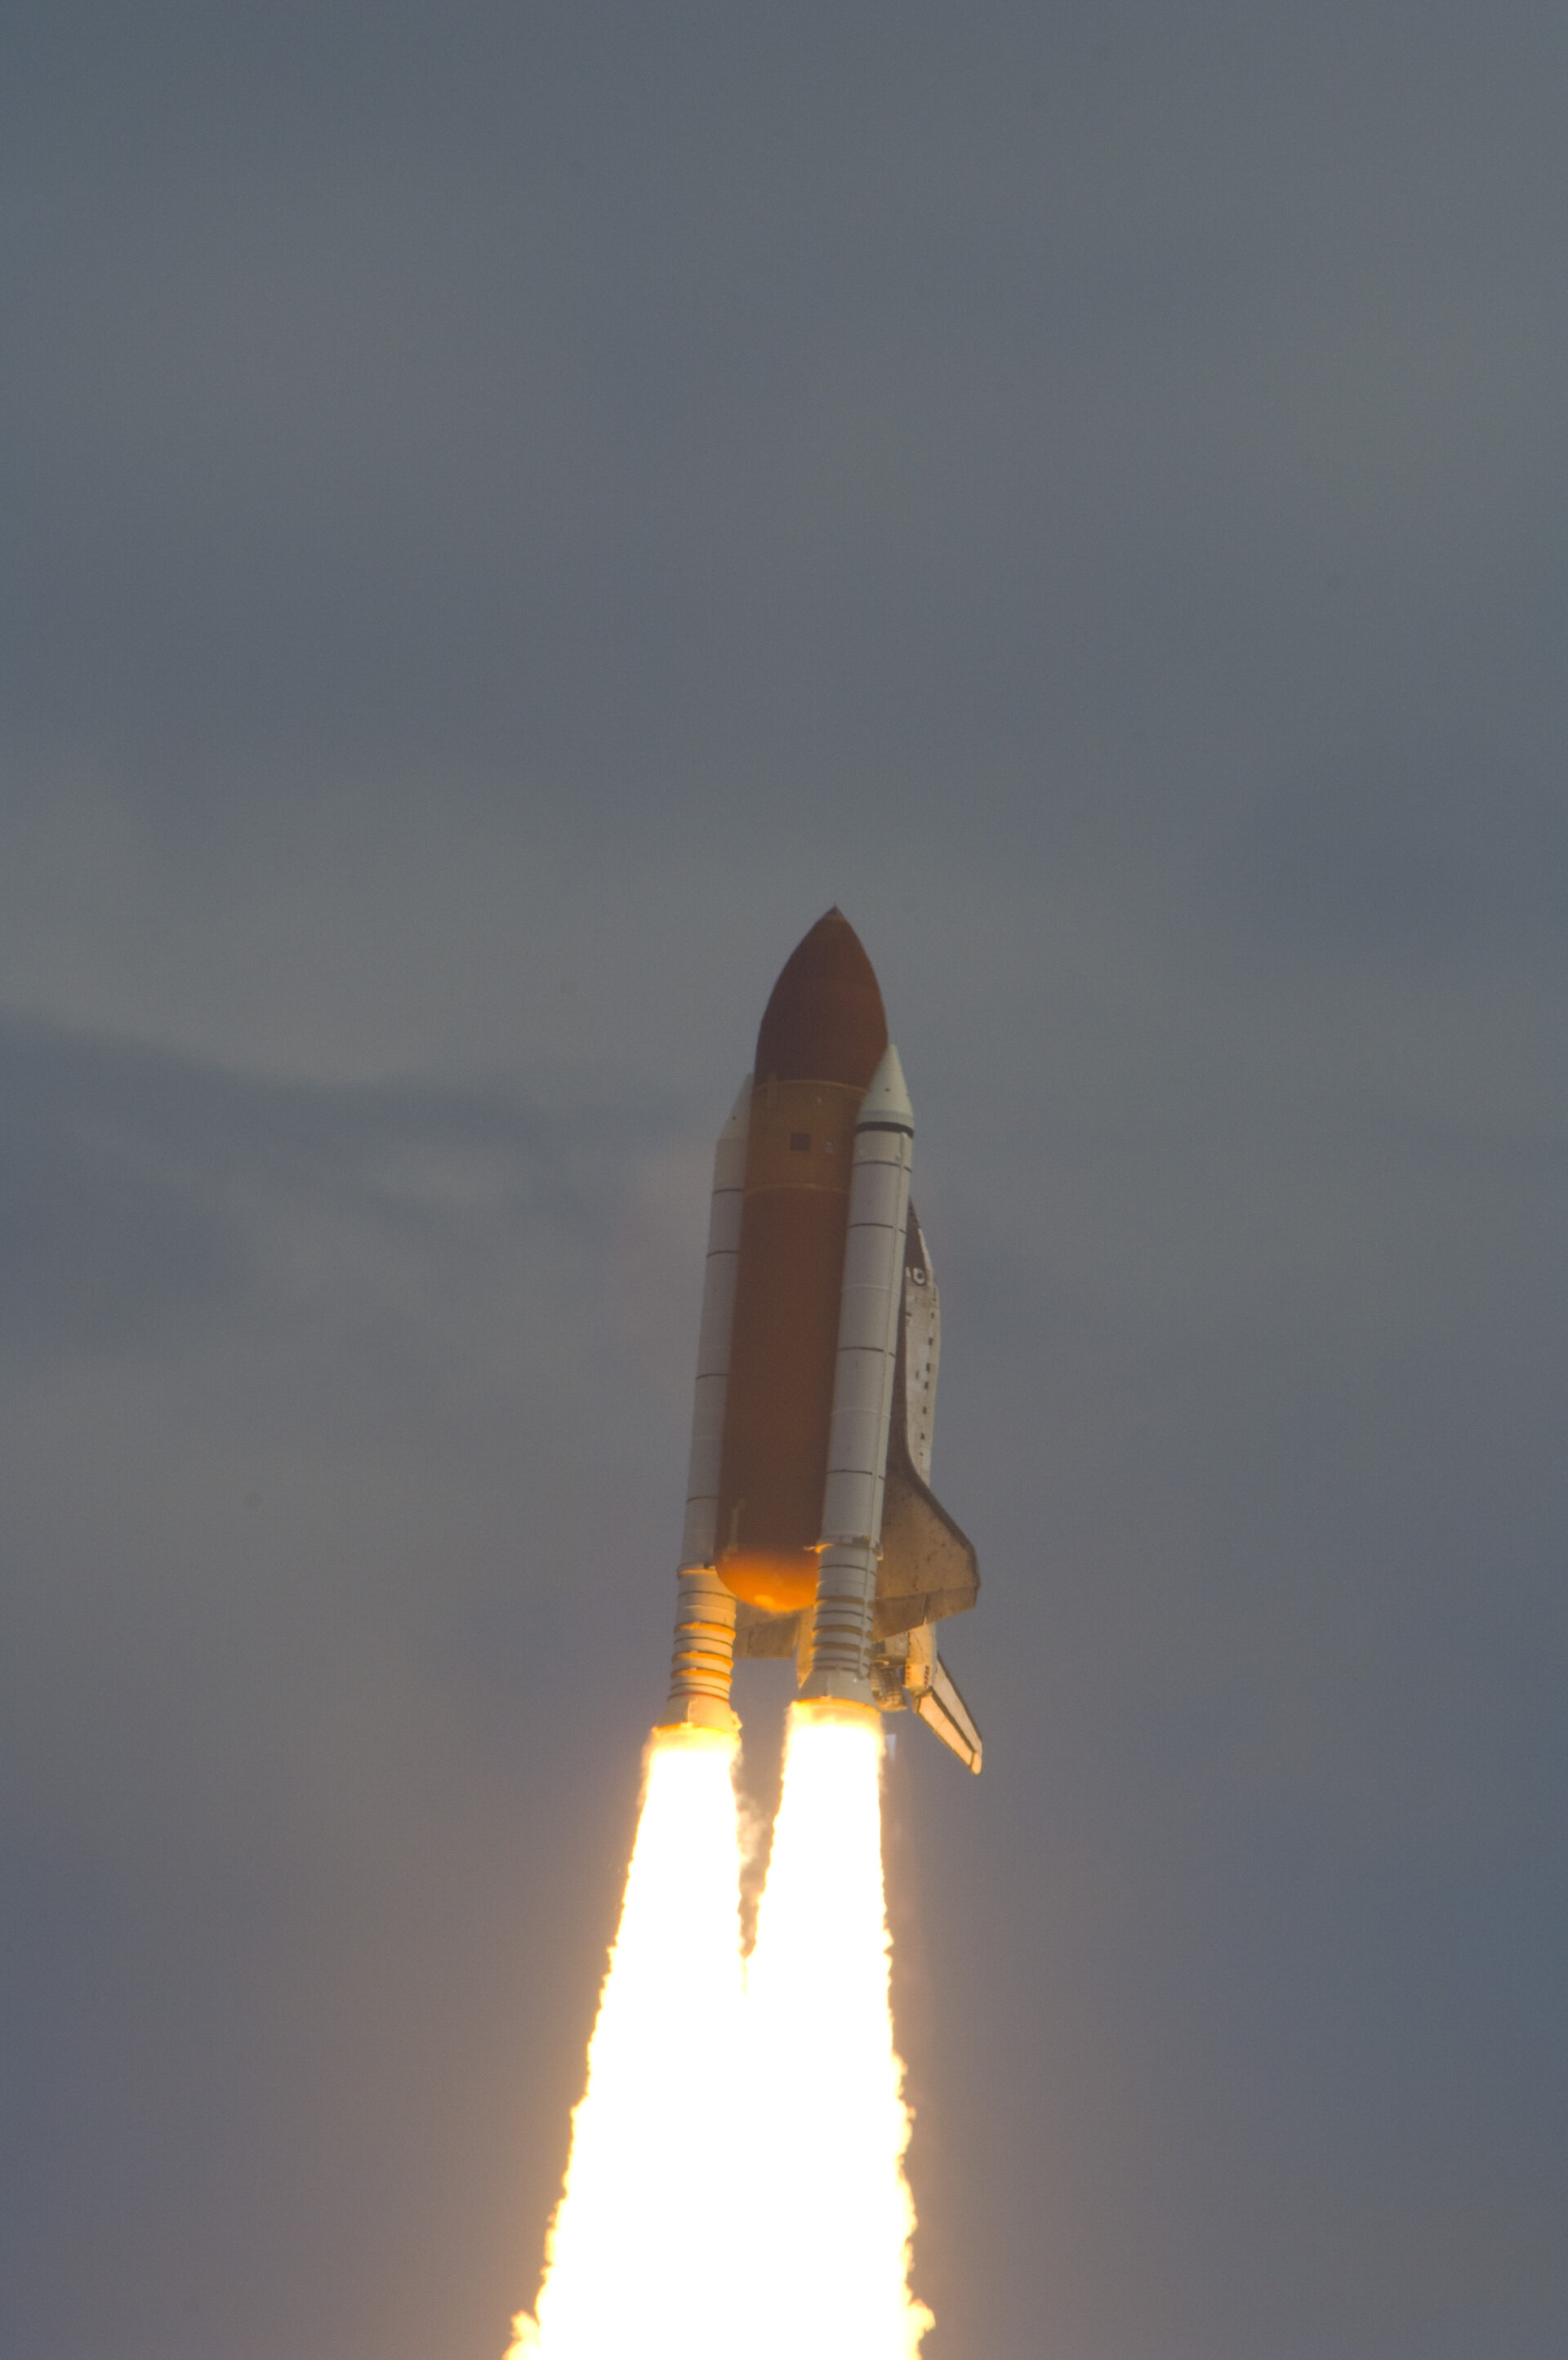 Successful lift-off of Space Shuttle Discovery from Cape Canaveral